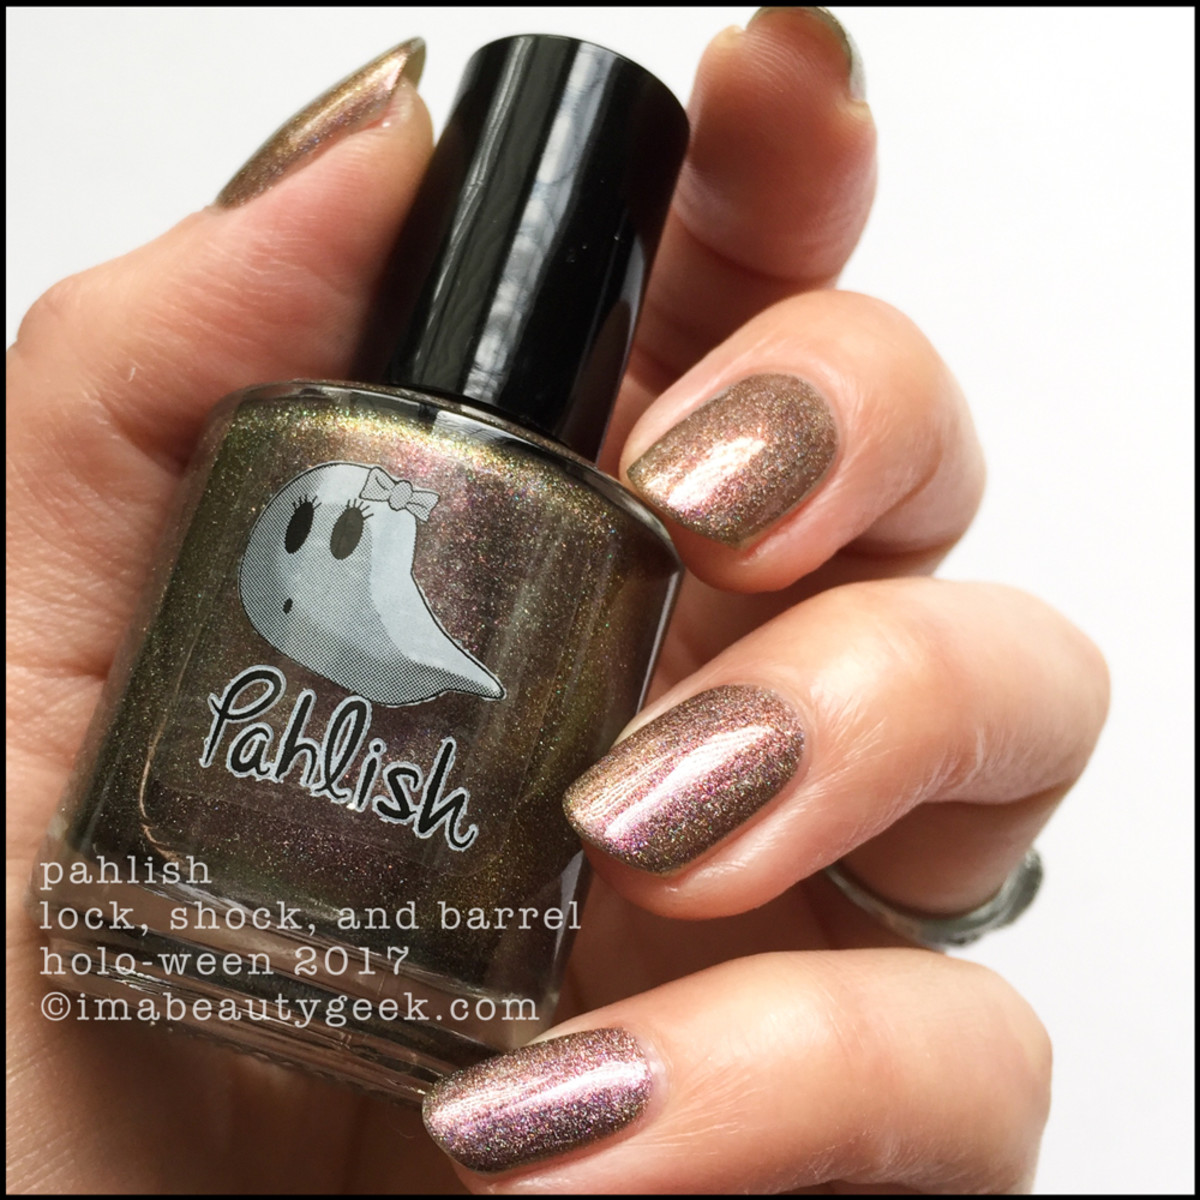 Pahlish Lock, Shock, and Barrel 1 - This is Holo-ween! 2017